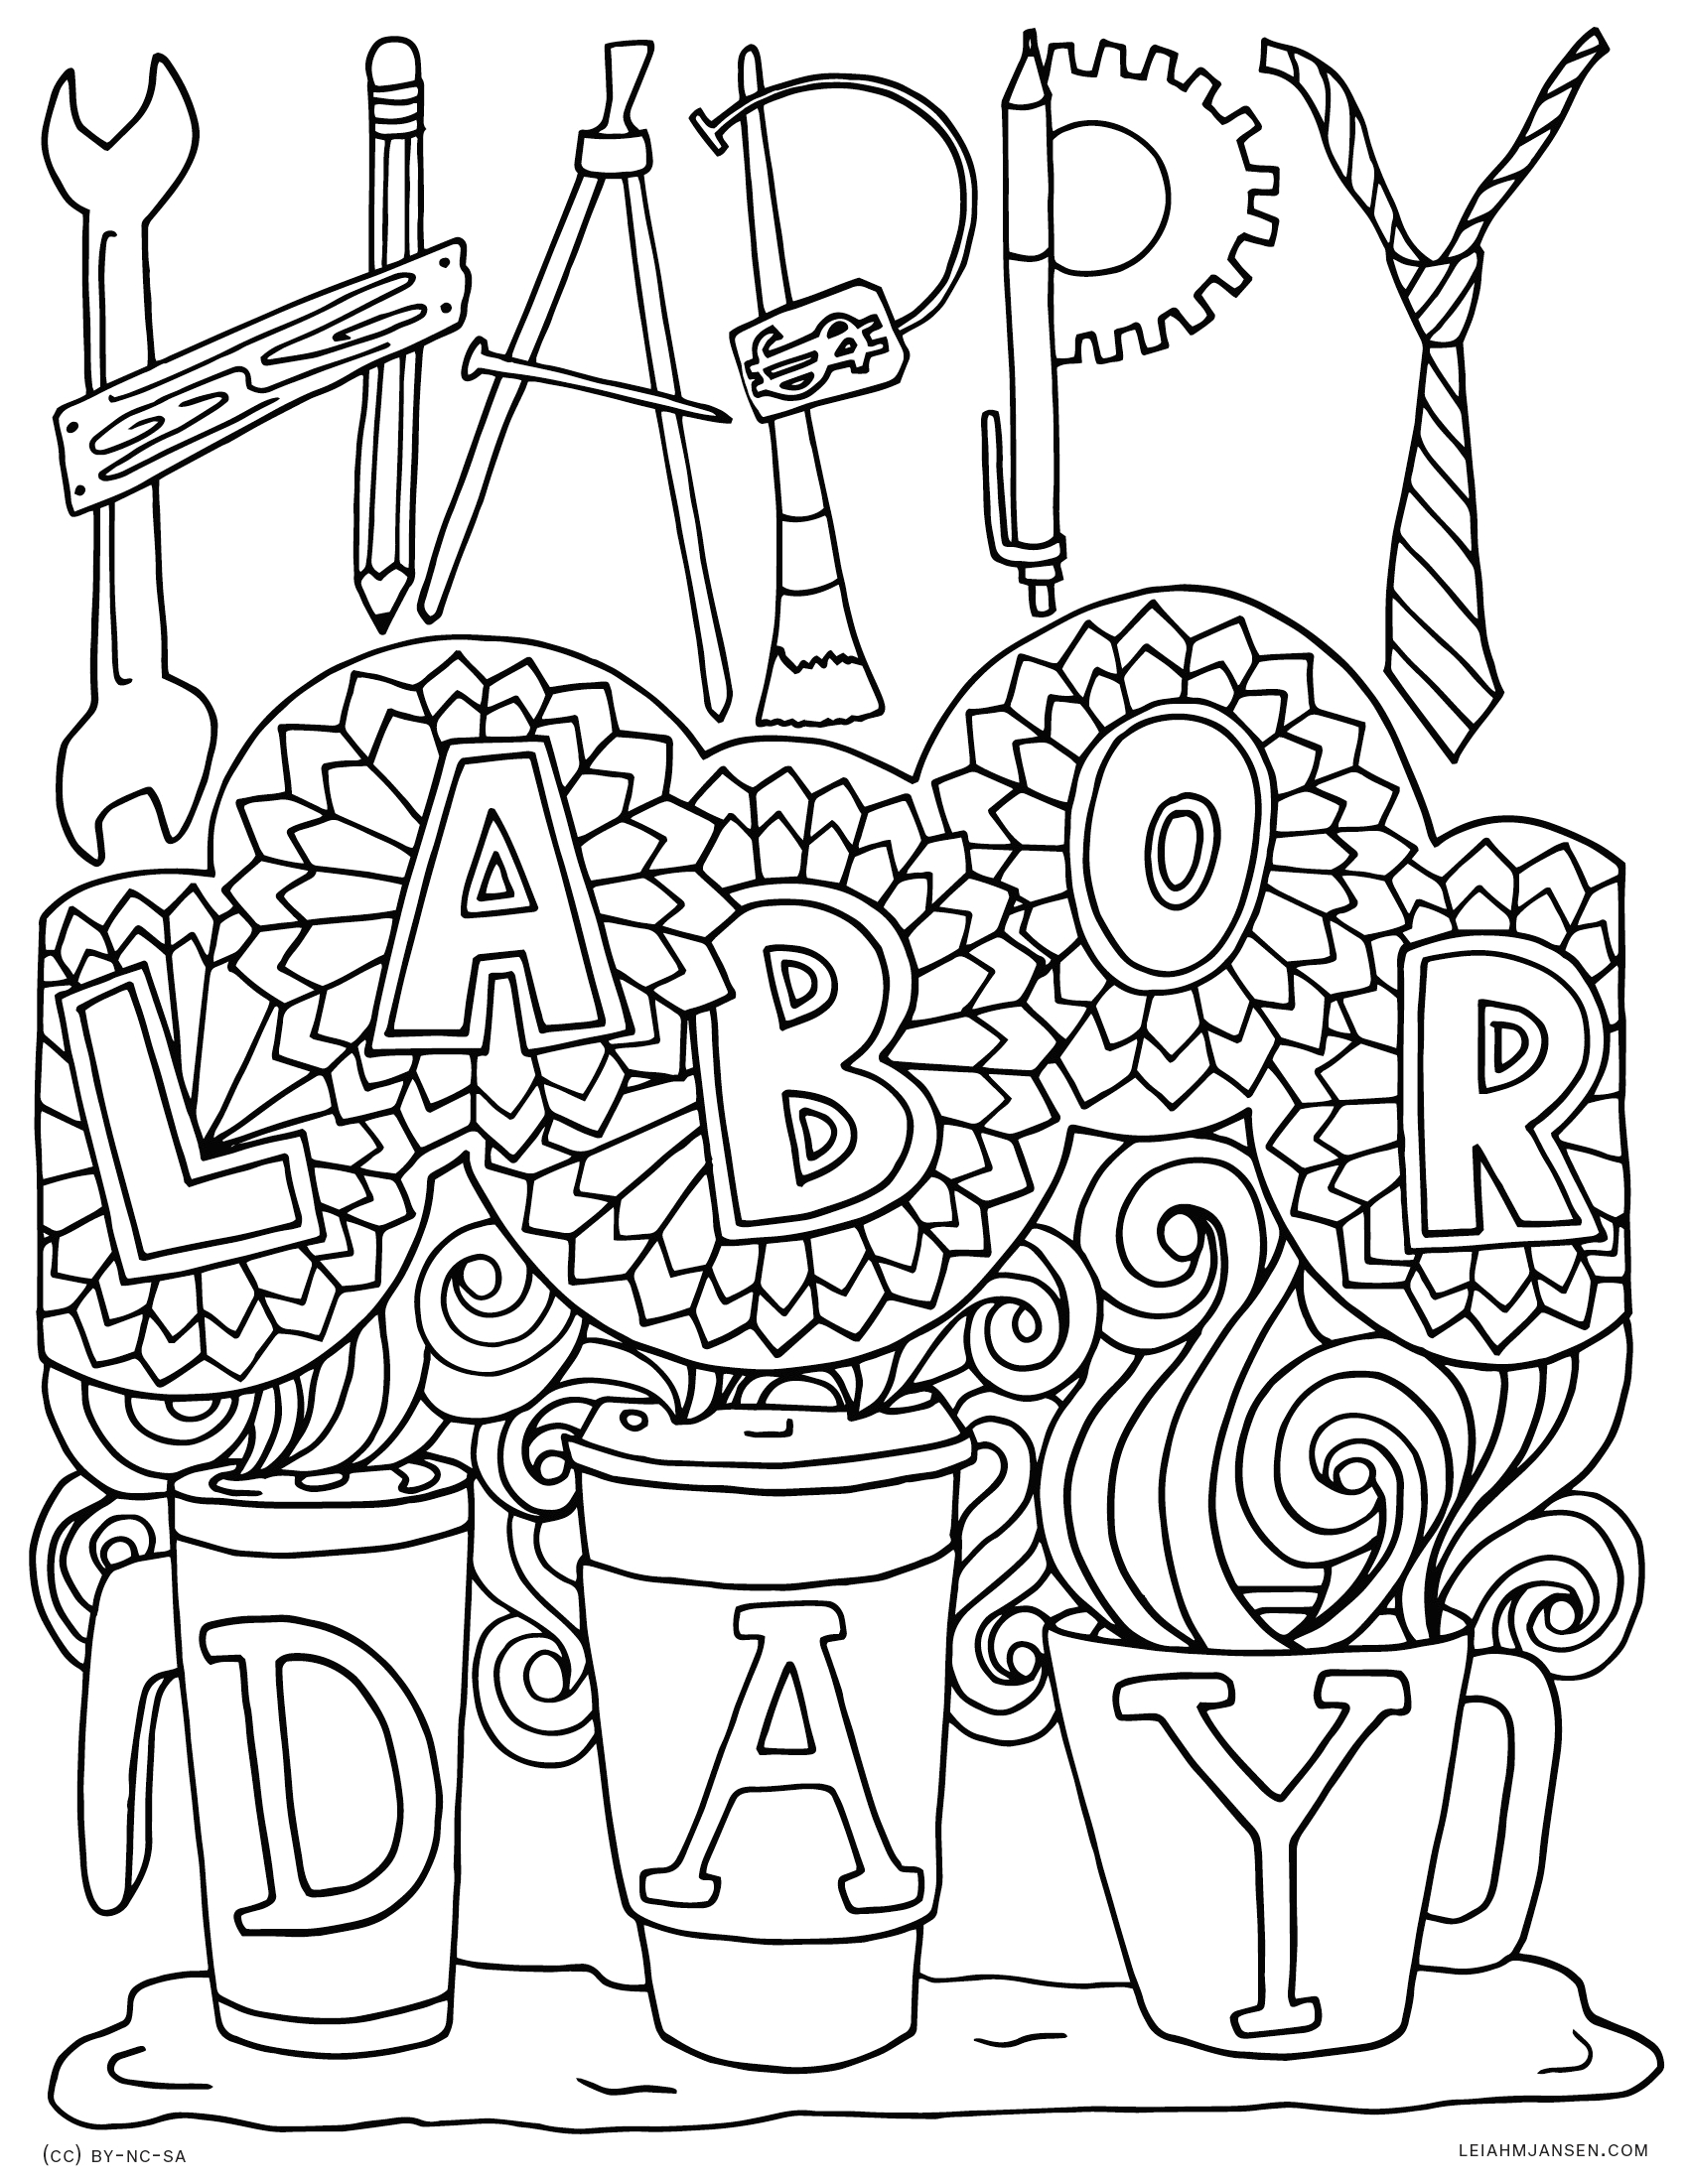 labor day coloring pages image 2525